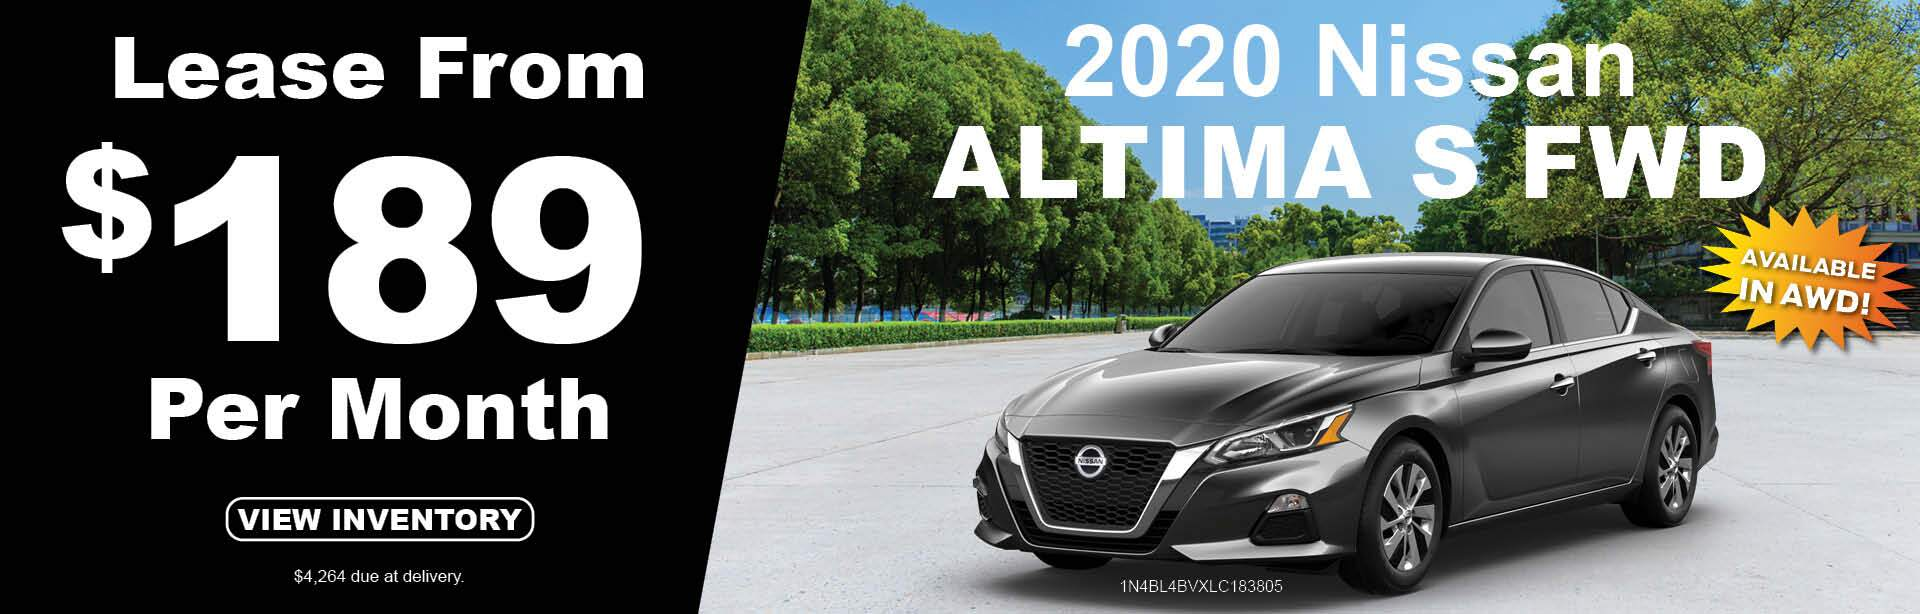 2020 Nissan Altima S FWD